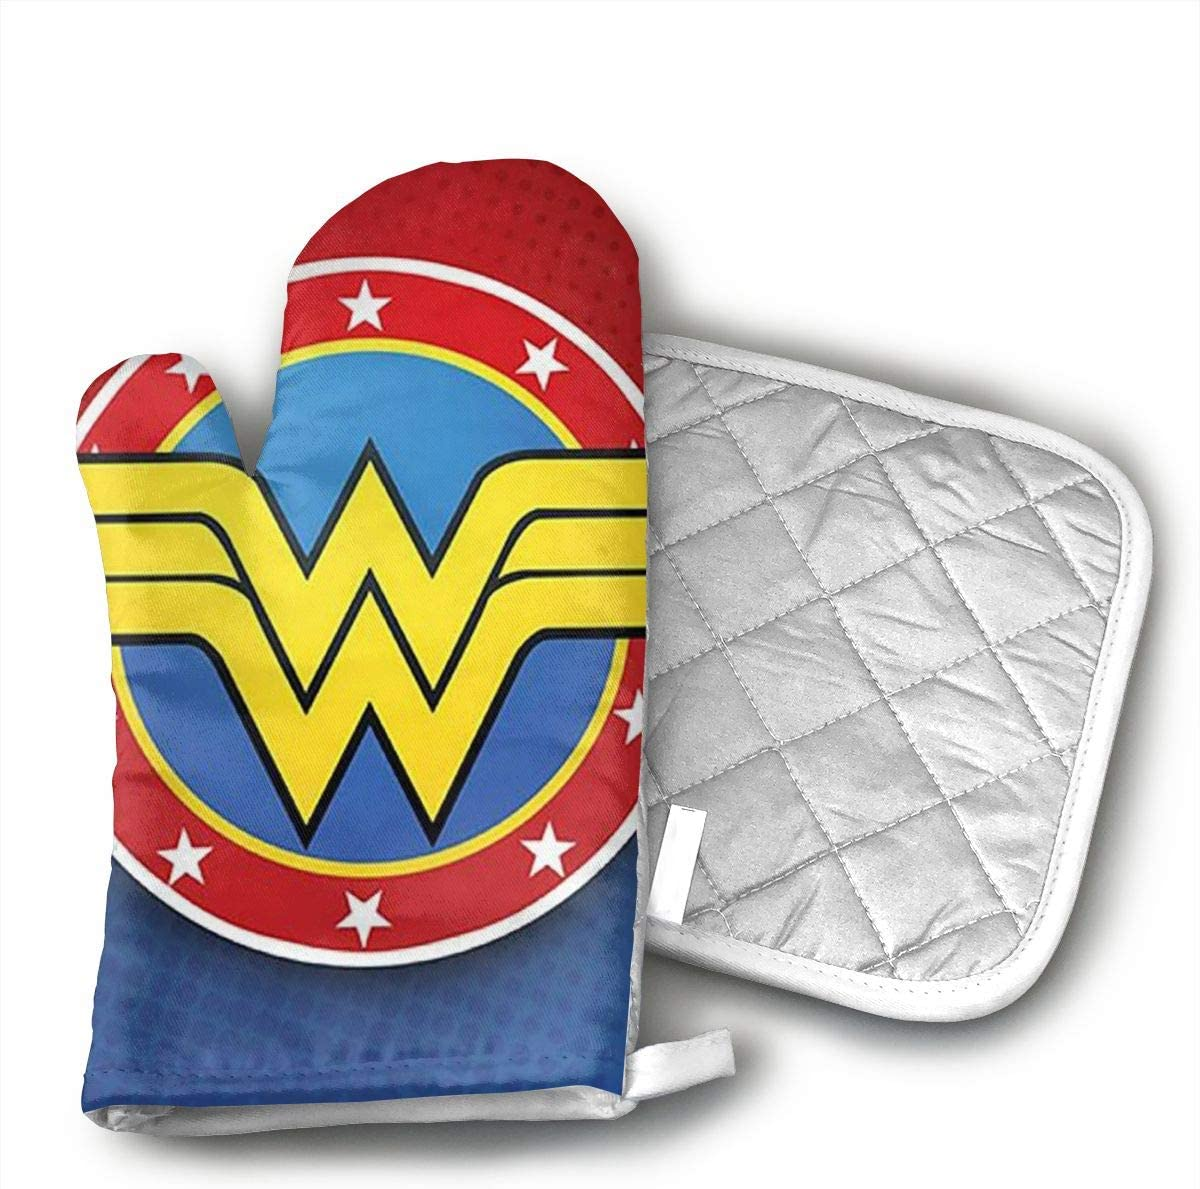 HGUIDHG Wonder Woman Oven Mitts+Insulated Square Mat,Heat Resistant Kitchen Gloves Soft Insulated Deep Pockets, Non-Slip Handles